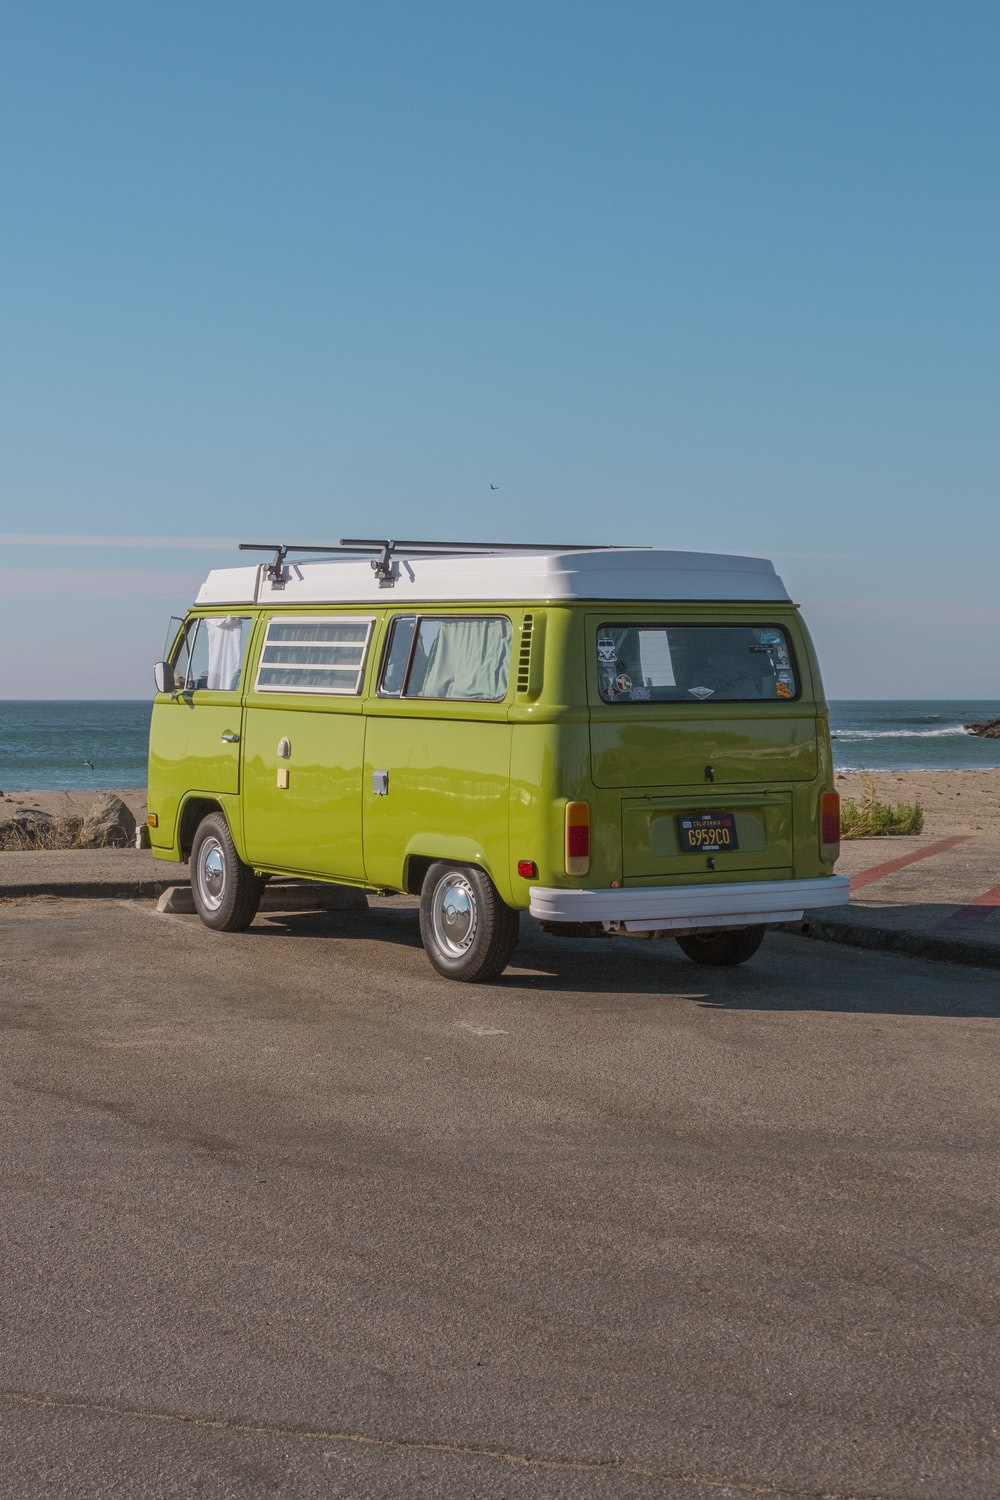 green volkswagen t-2 on brown soil near body of water during daytime